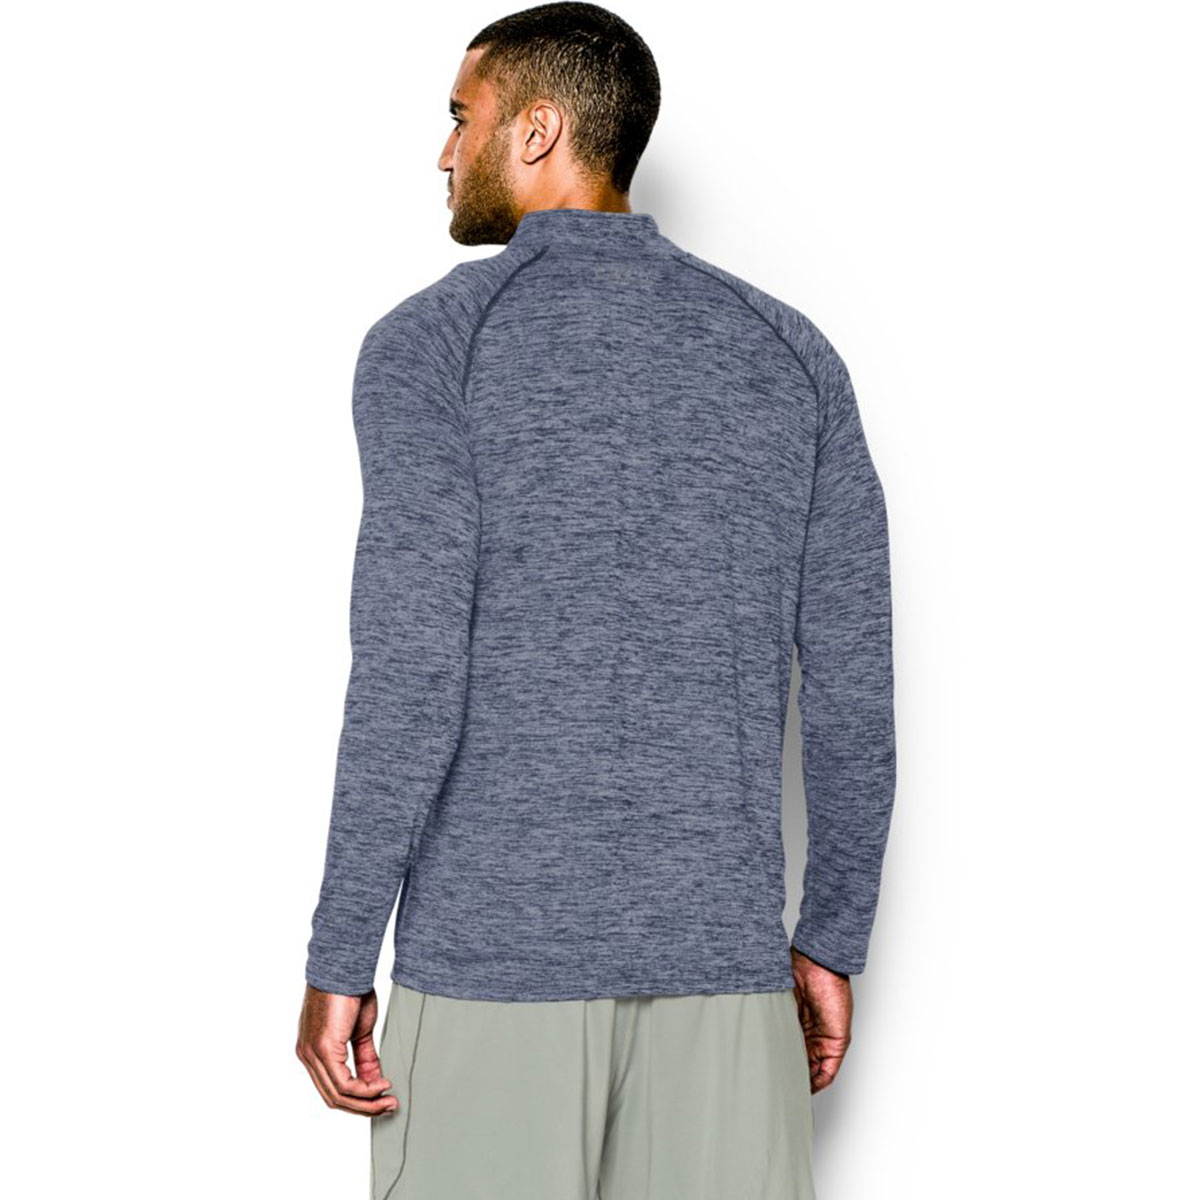 Under-Armour-Mens-UA-Tech-1-4-Zip-Long-Sleeve-Top-Workout-Layer-27-OFF-RRP thumbnail 3